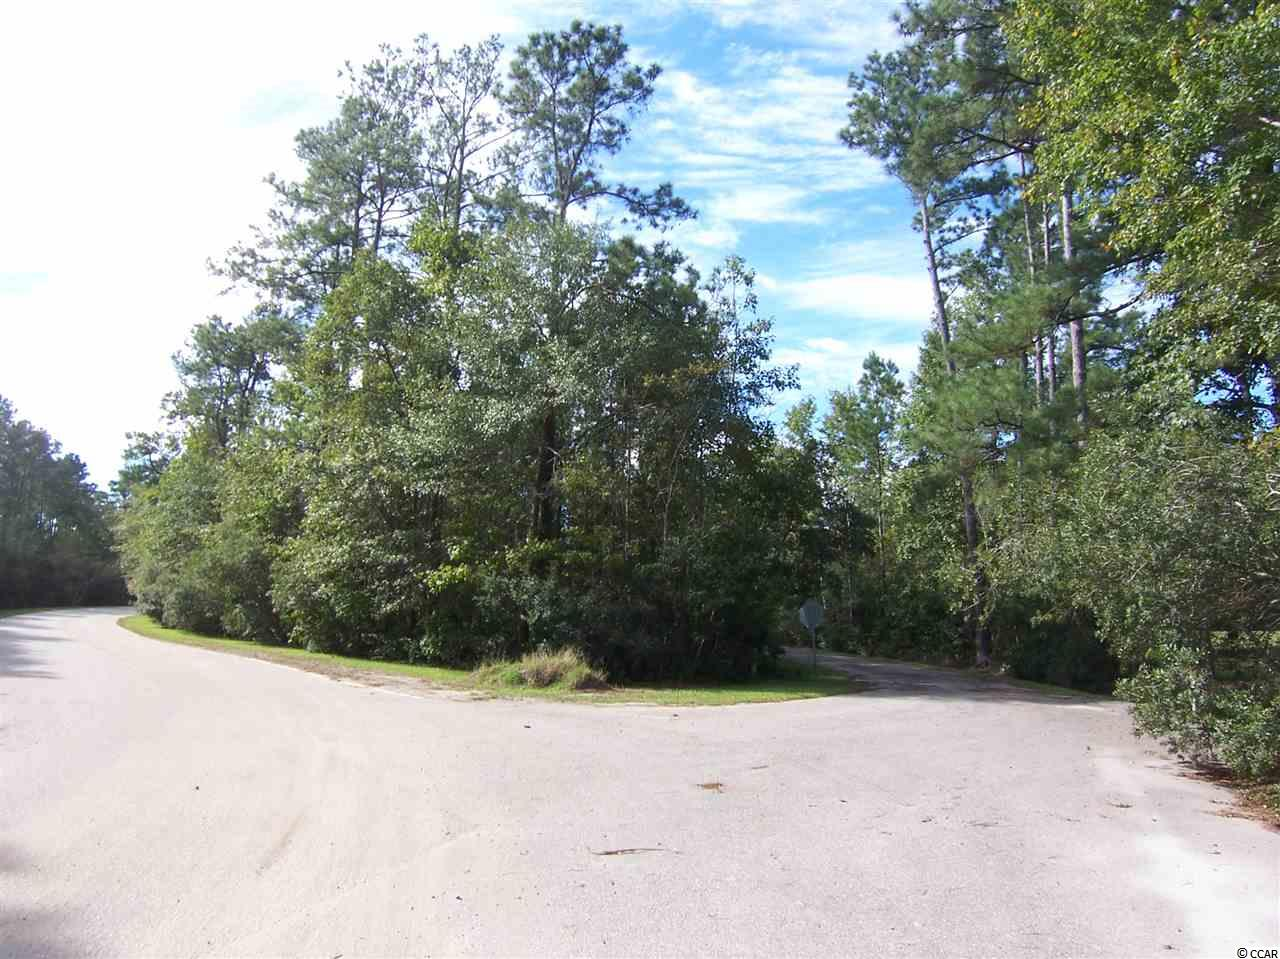 Land for sale in Myrtle Beach/Socastee area. Convenient to Rt 544 and Rt 31. Parcel of 2 lots totaling 1.35 acre, zoned residential. Short drive, about 8 miles to beaches. Make an offer!   NOTE: A variance for the setback on the lot is required prior to building. Ask your realtor about the​​‌​​​​‌​​‌‌​​​‌​​‌‌​​​‌​‌​​​‌‌​ details.